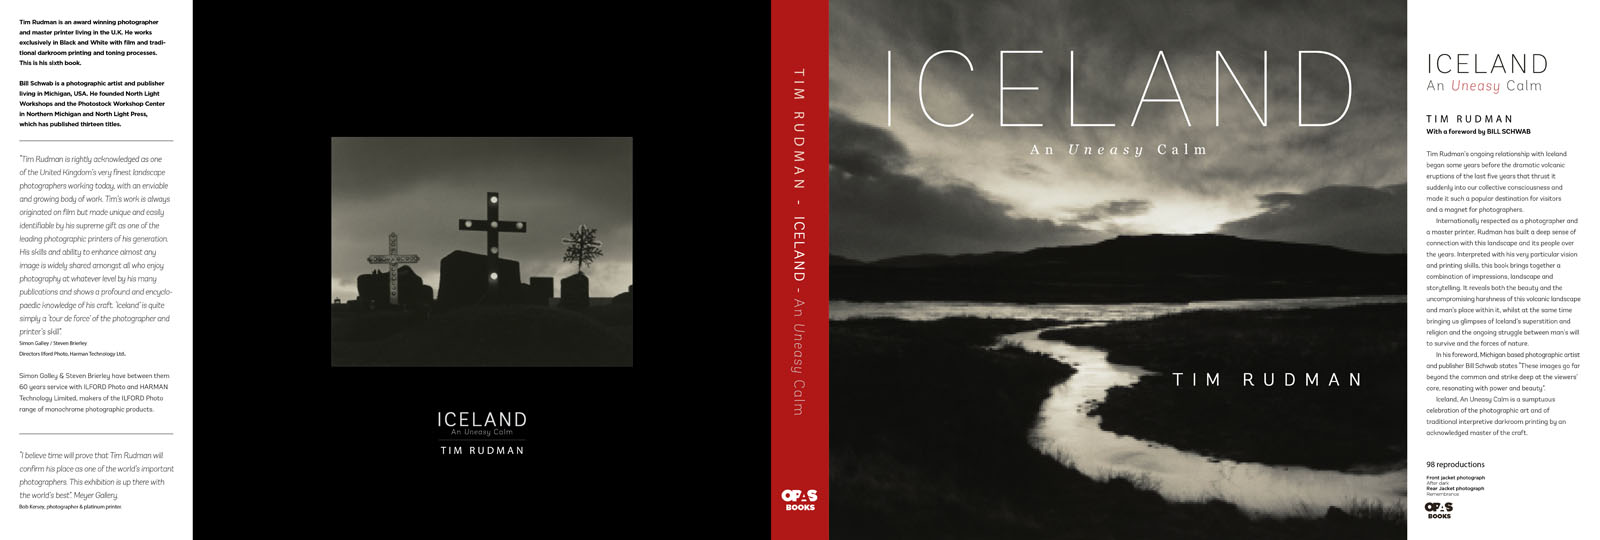 Iceland, An Uneasy Calm dust jacket